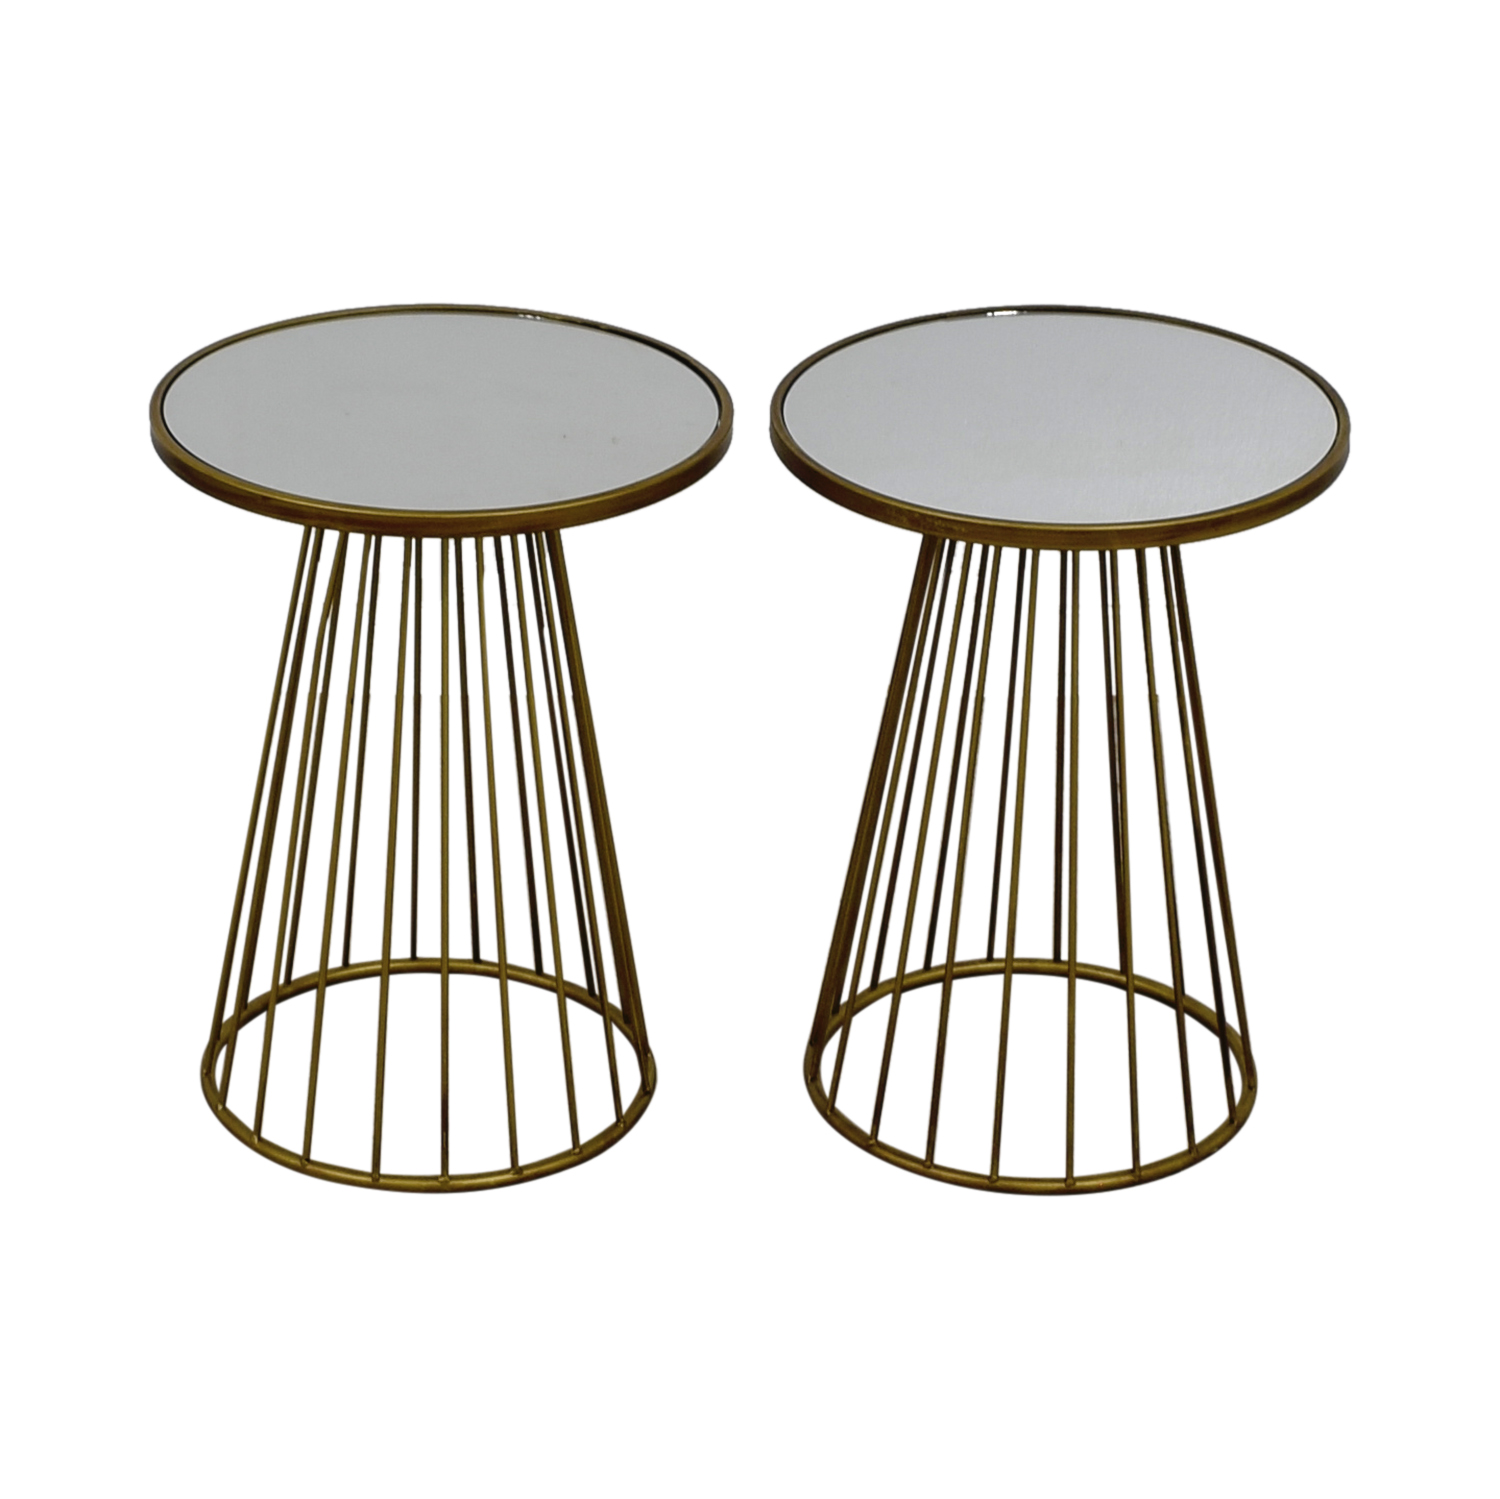 Round Dark Gold Mirrored End Tables / Sofas